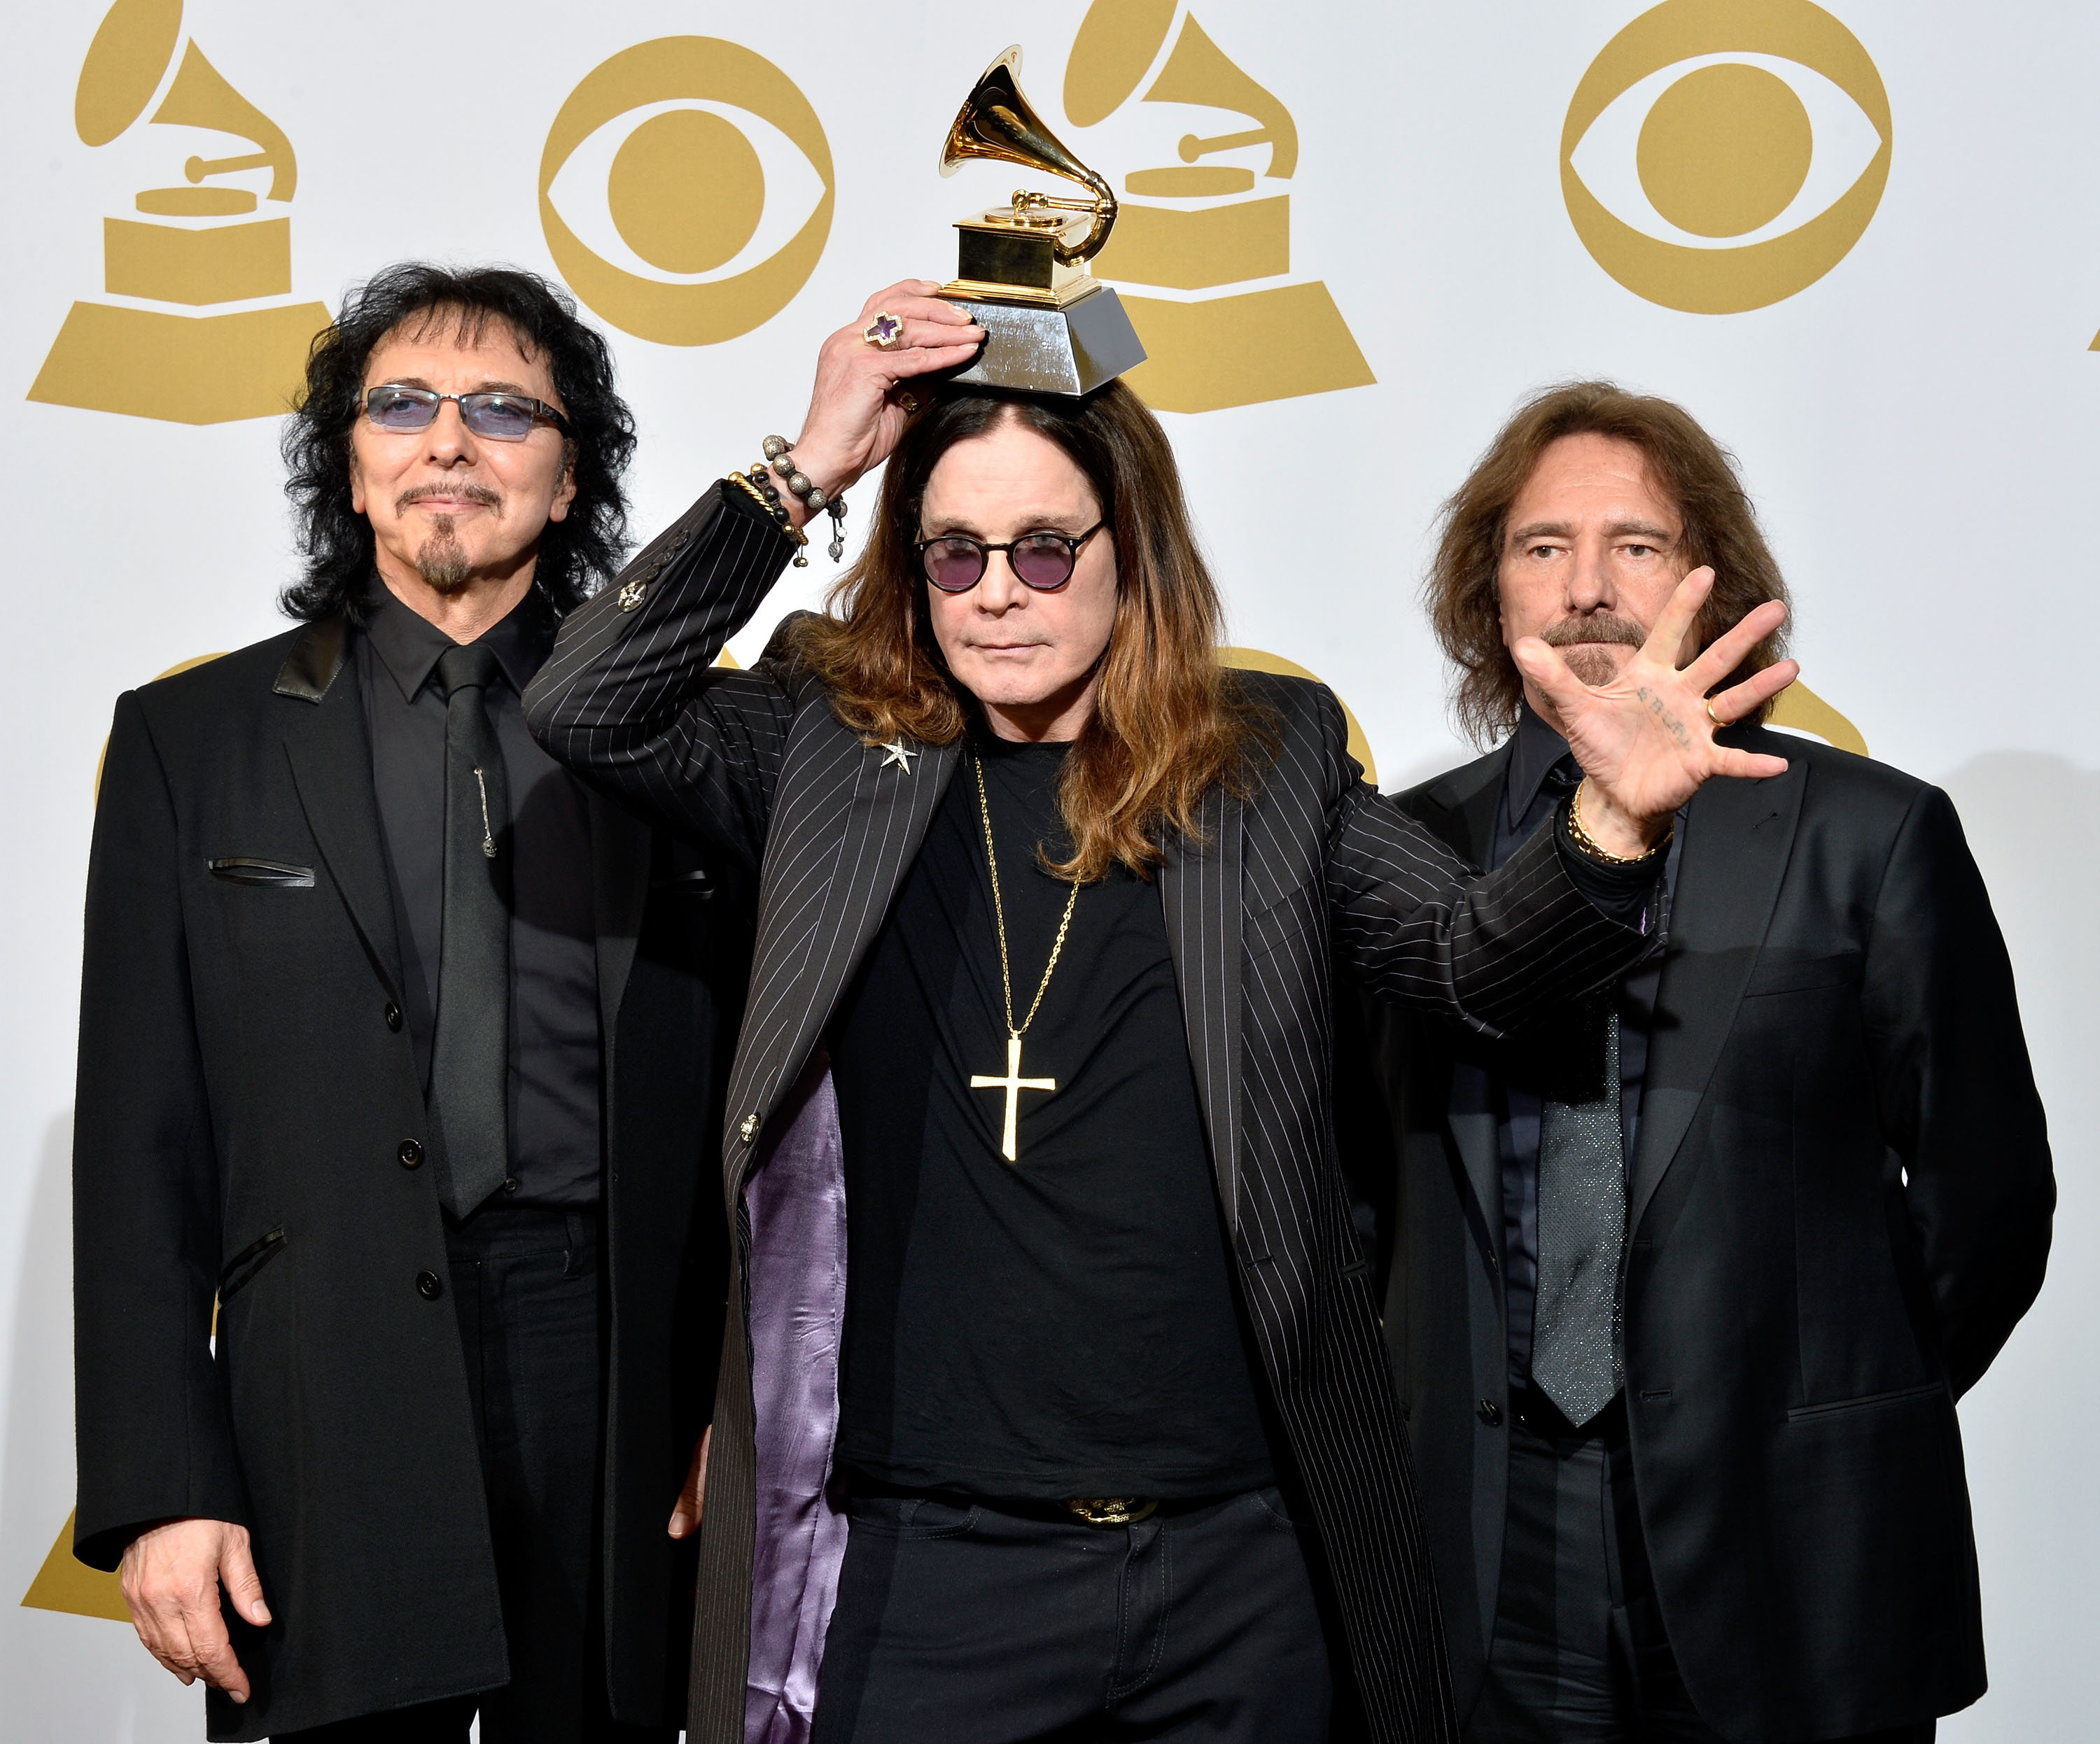 (L-R) Tony Iommi, Ozzy Osbourne and Geezer Butler of Black Sabbath pose in the press room during the 56th GRAMMY Awards at Staples Center on January 26, 2014 in Los Angeles, California. (Photo credit: Getty Images)